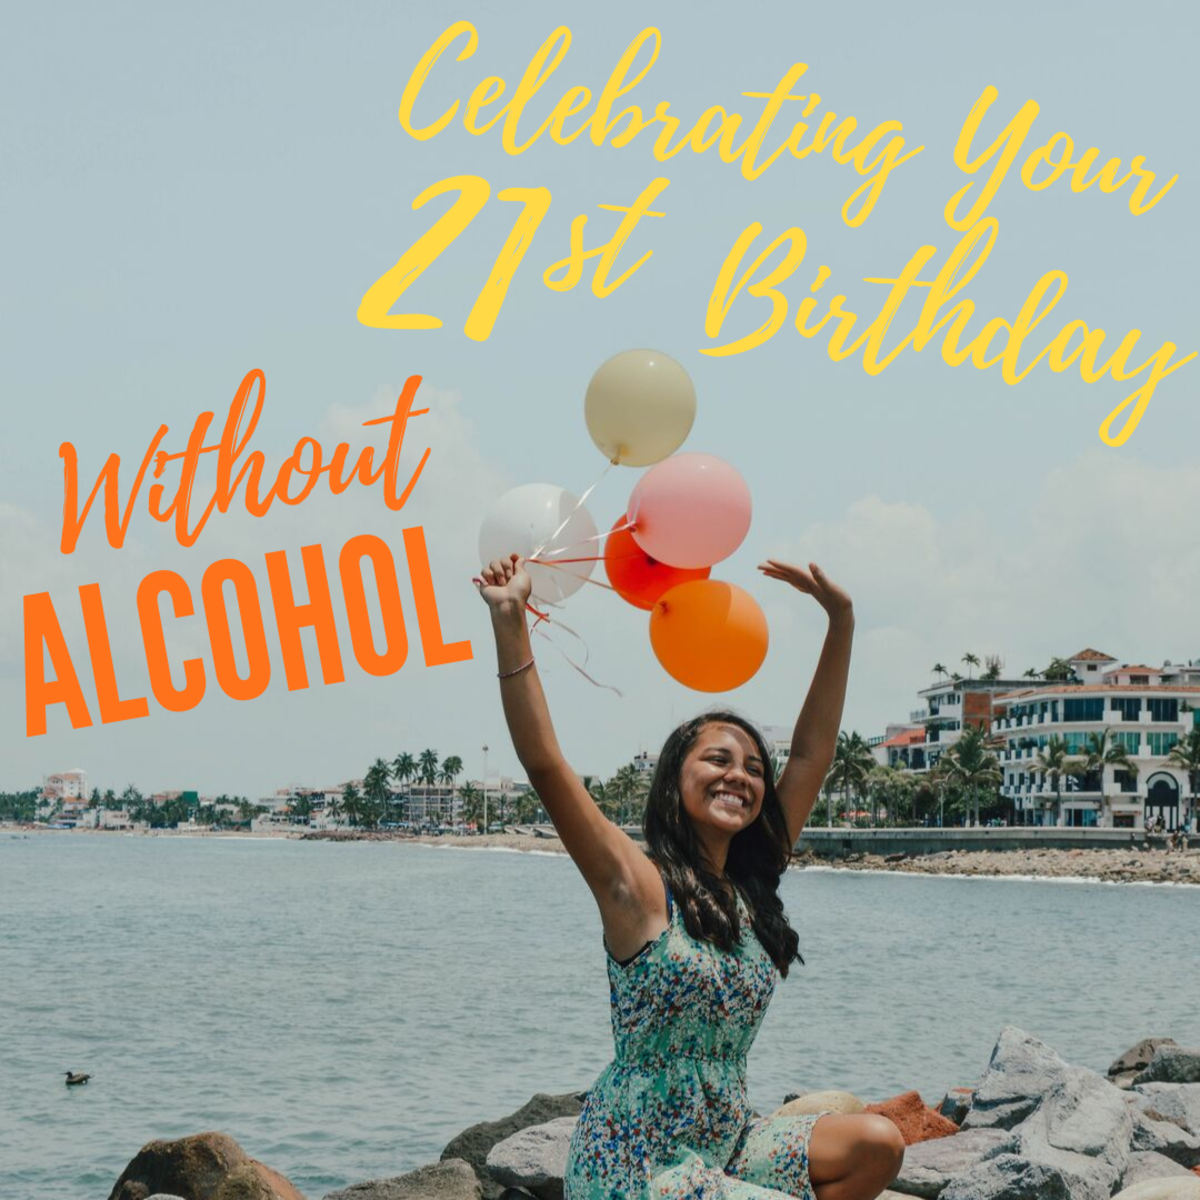 How to Celebrate Your 21st Birthday Without Alcohol